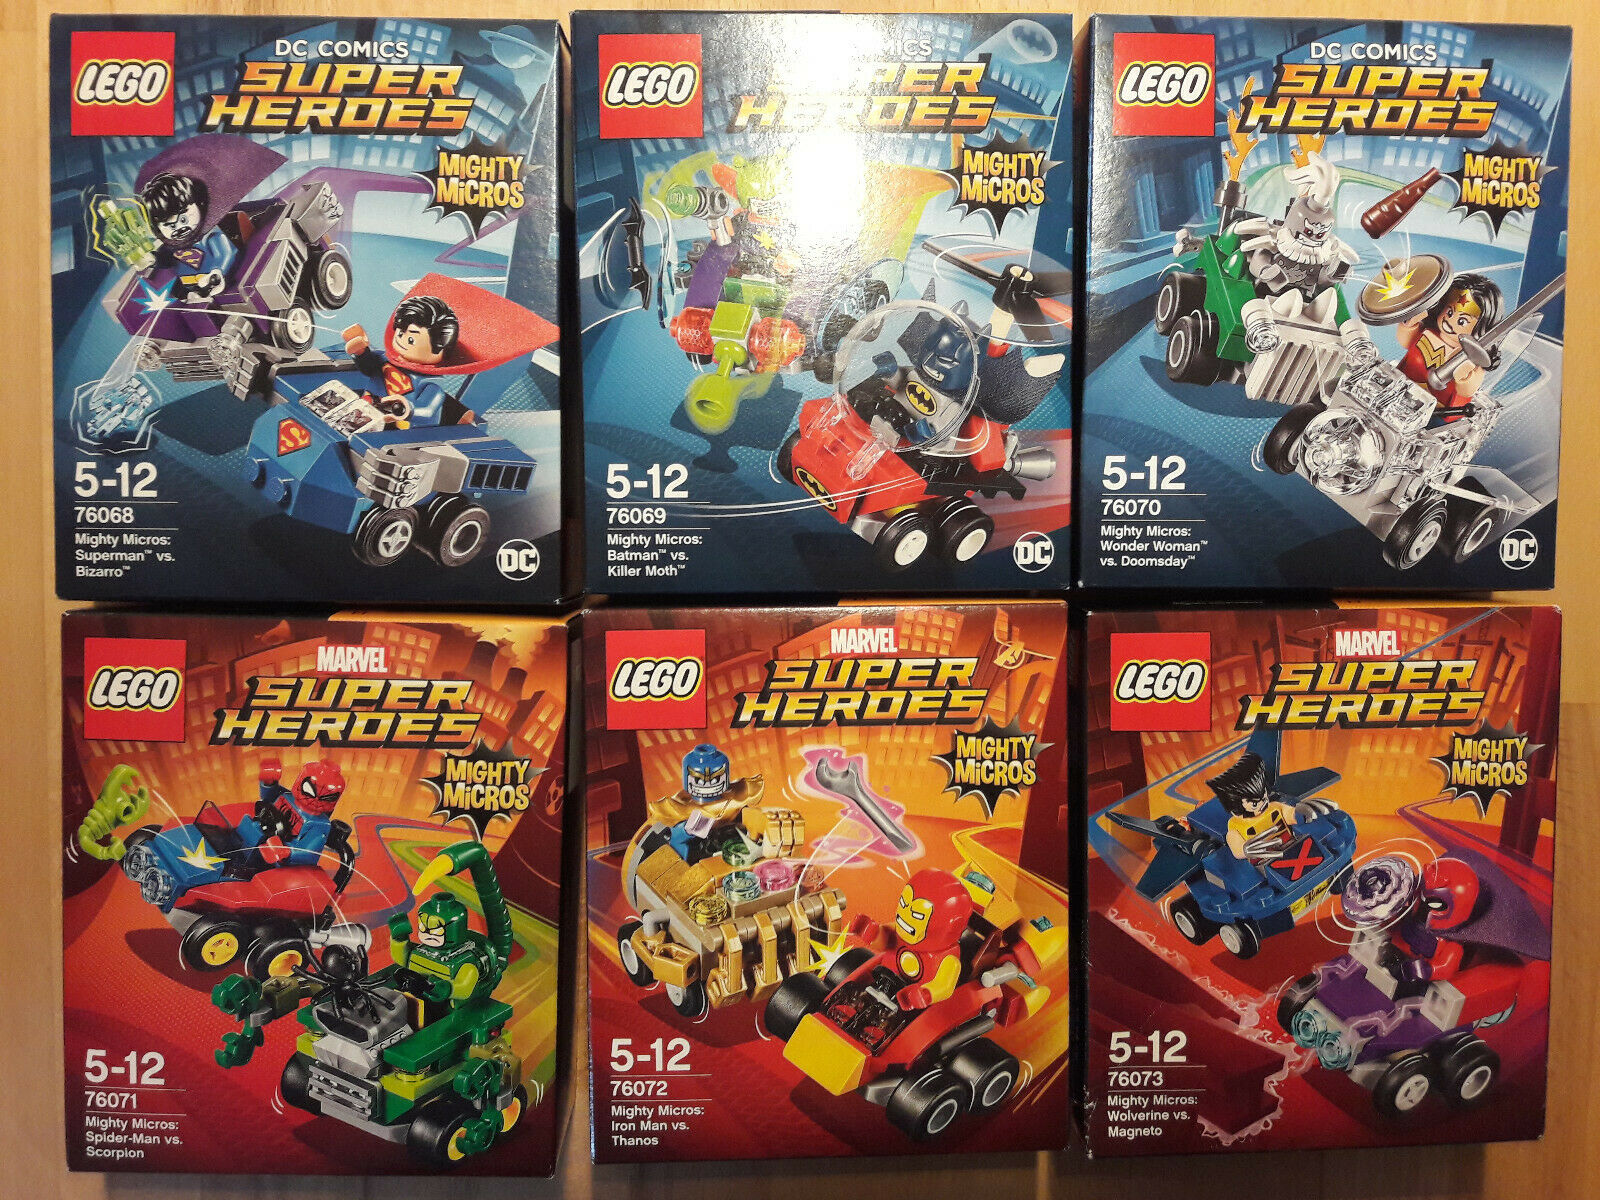 LEGO Super Heroes Mighty Micros Serie 2,76068, 76069, 76070, 76071, 76072, 76073